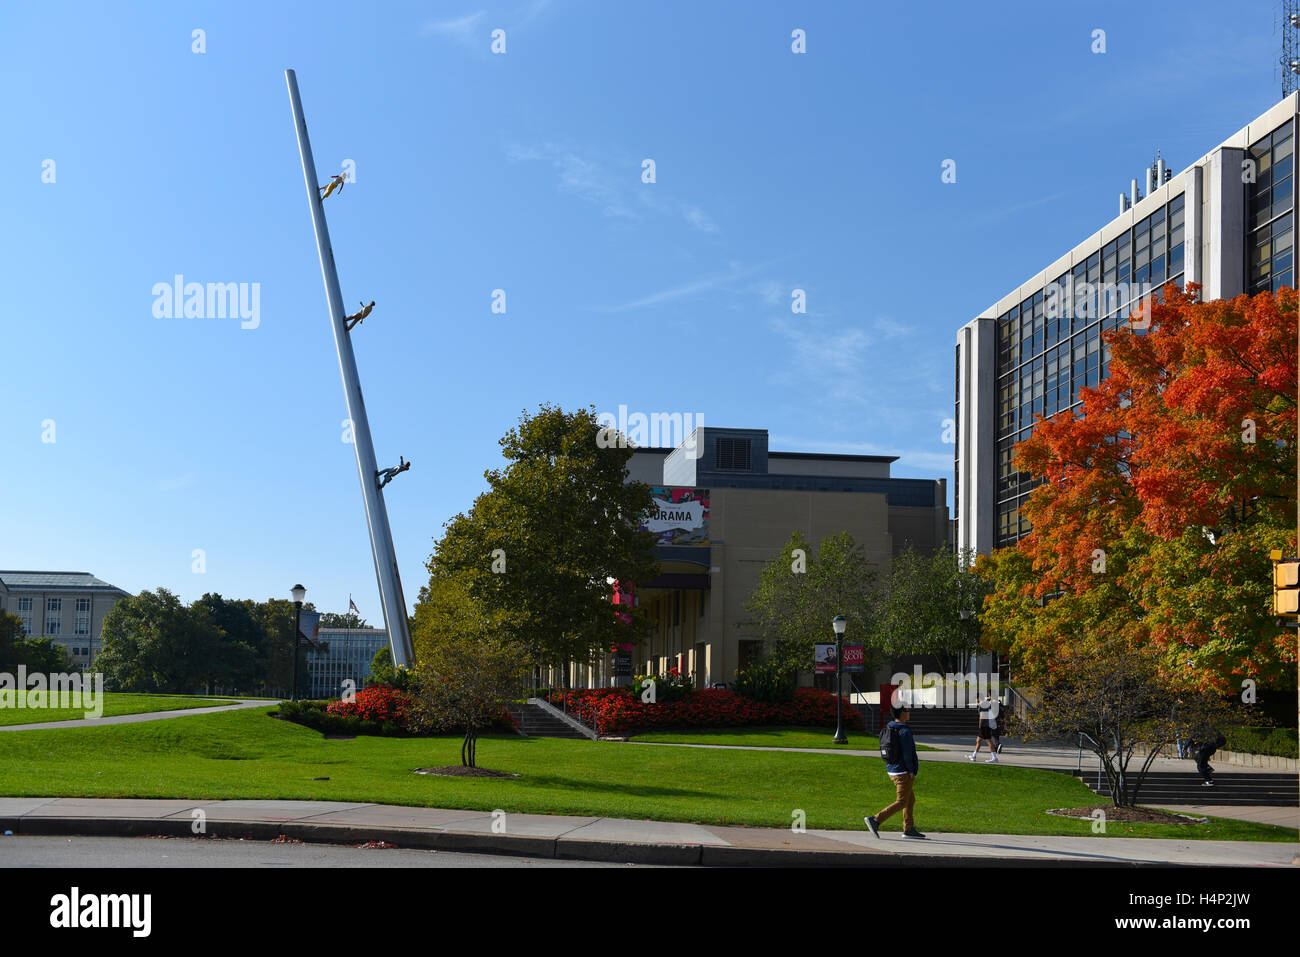 USA Pittsburgh PA Pennsylvania university campus of Carnegie Mellon fall with art piece 'Walking to the Sky' - Stock Image